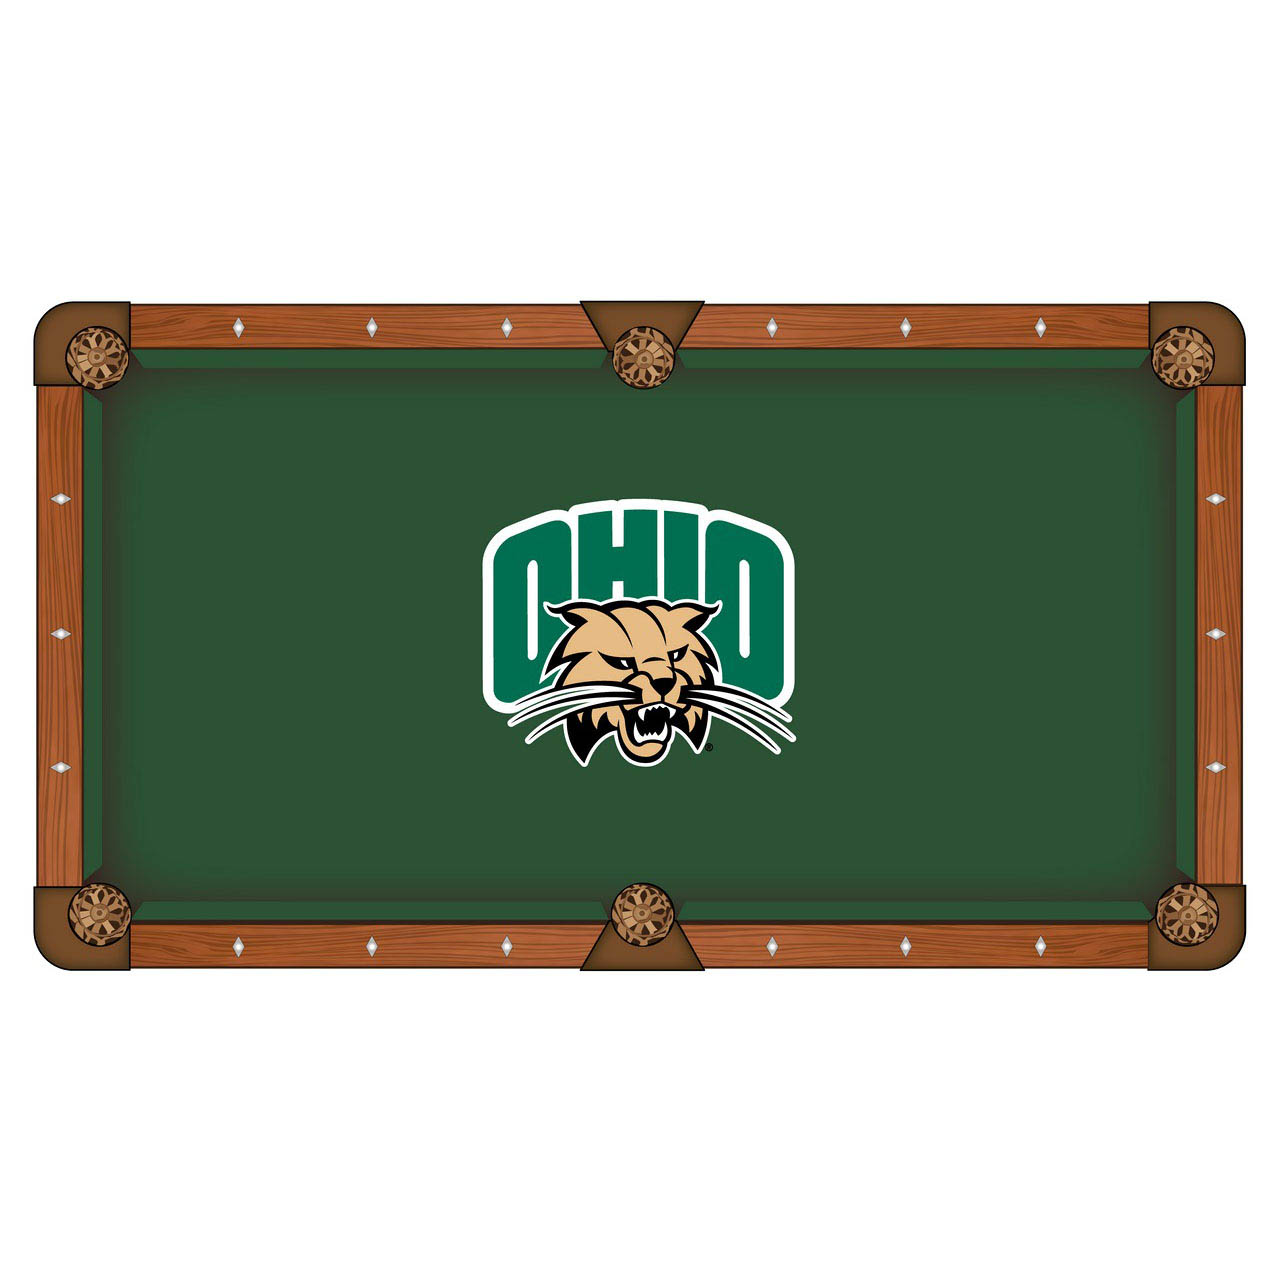 Trustworthy Ohio University Pool Table Cloth Product Photo